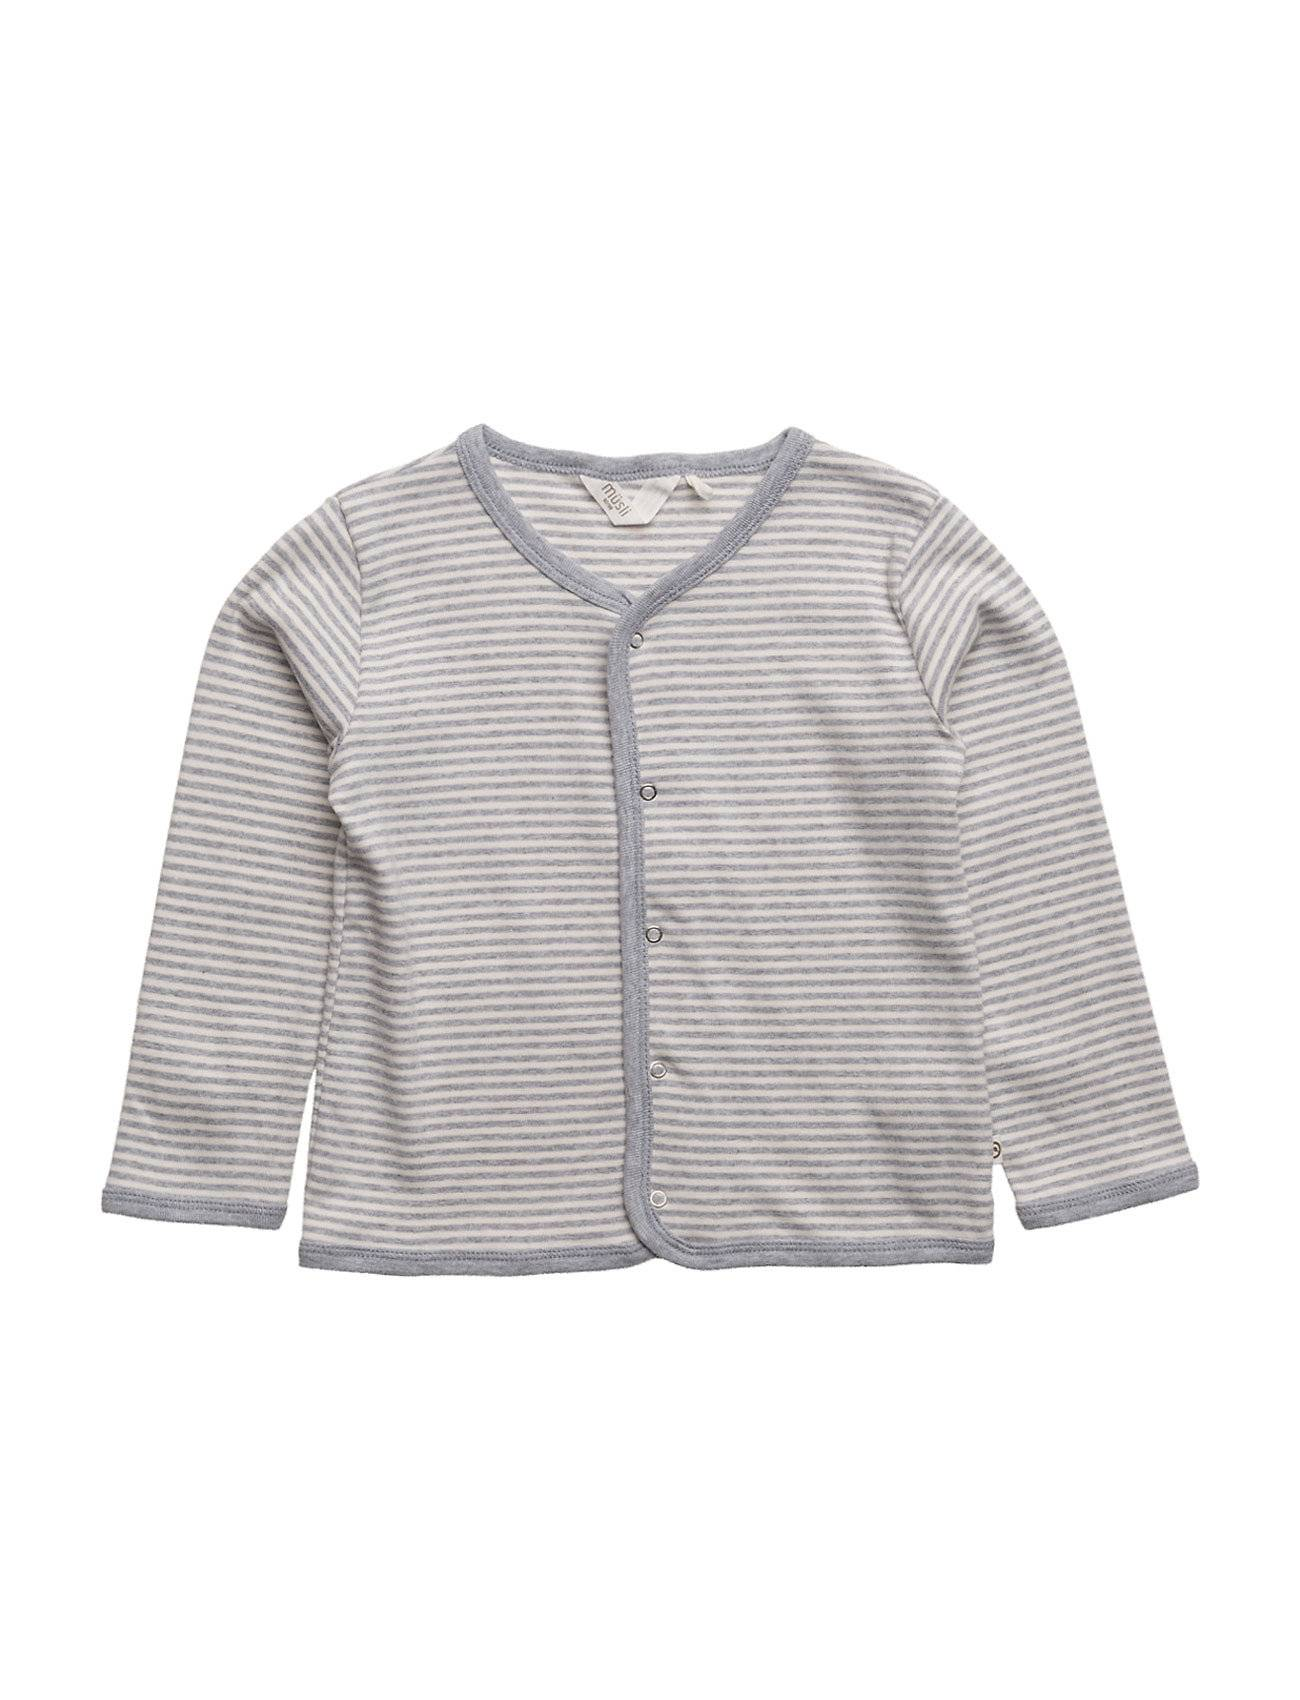 Müsli by Green Cotton Stripe Cardigan Baby